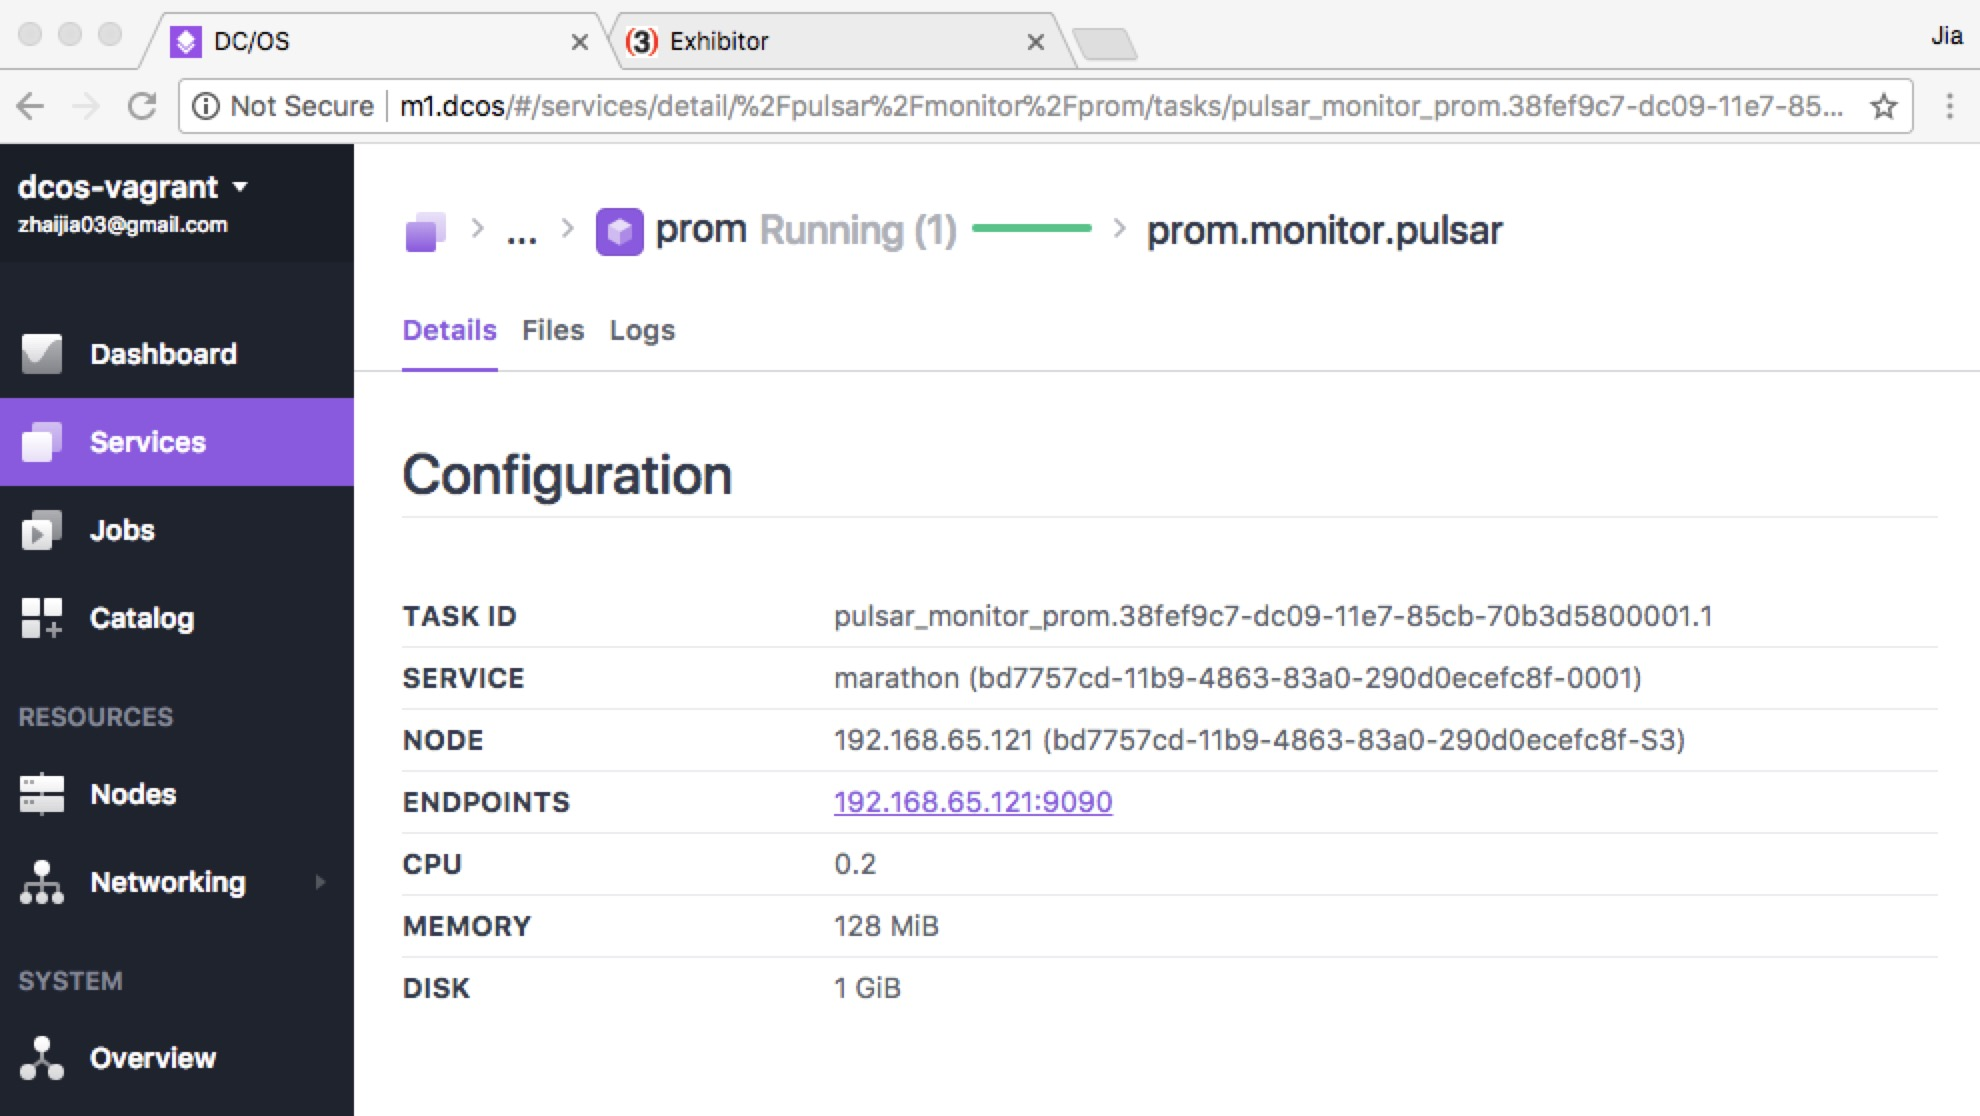 DC/OS prom endpoint